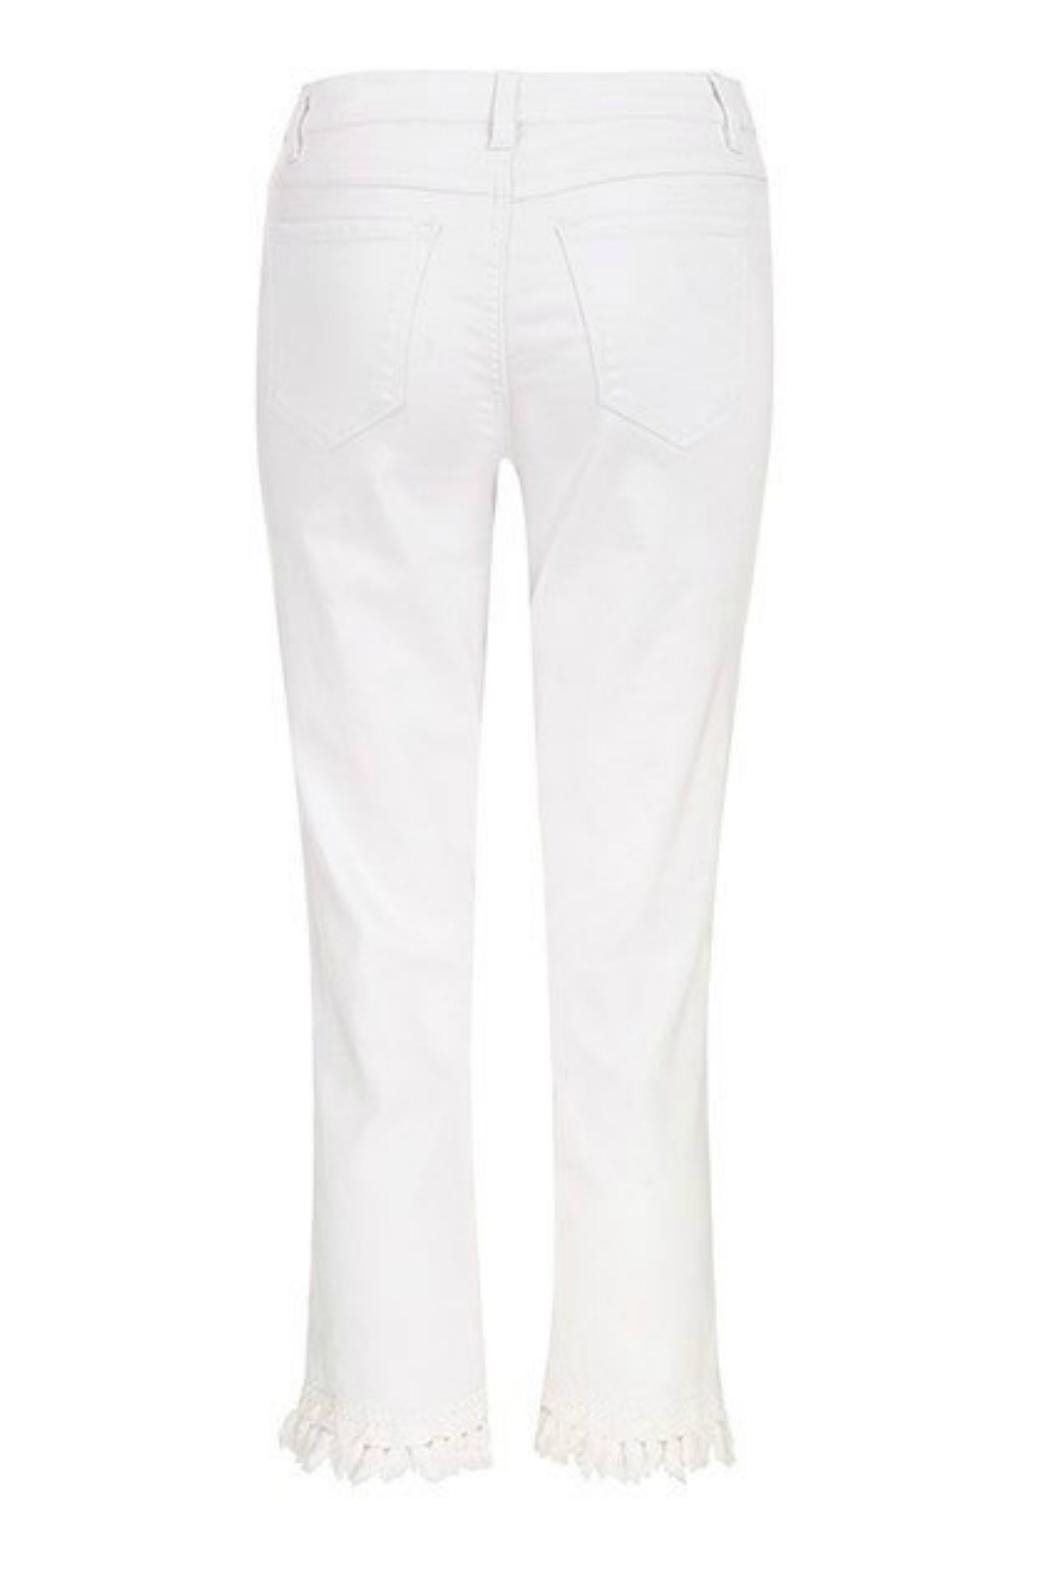 Tribal Jeans White Cropped Jean - Side Cropped Image